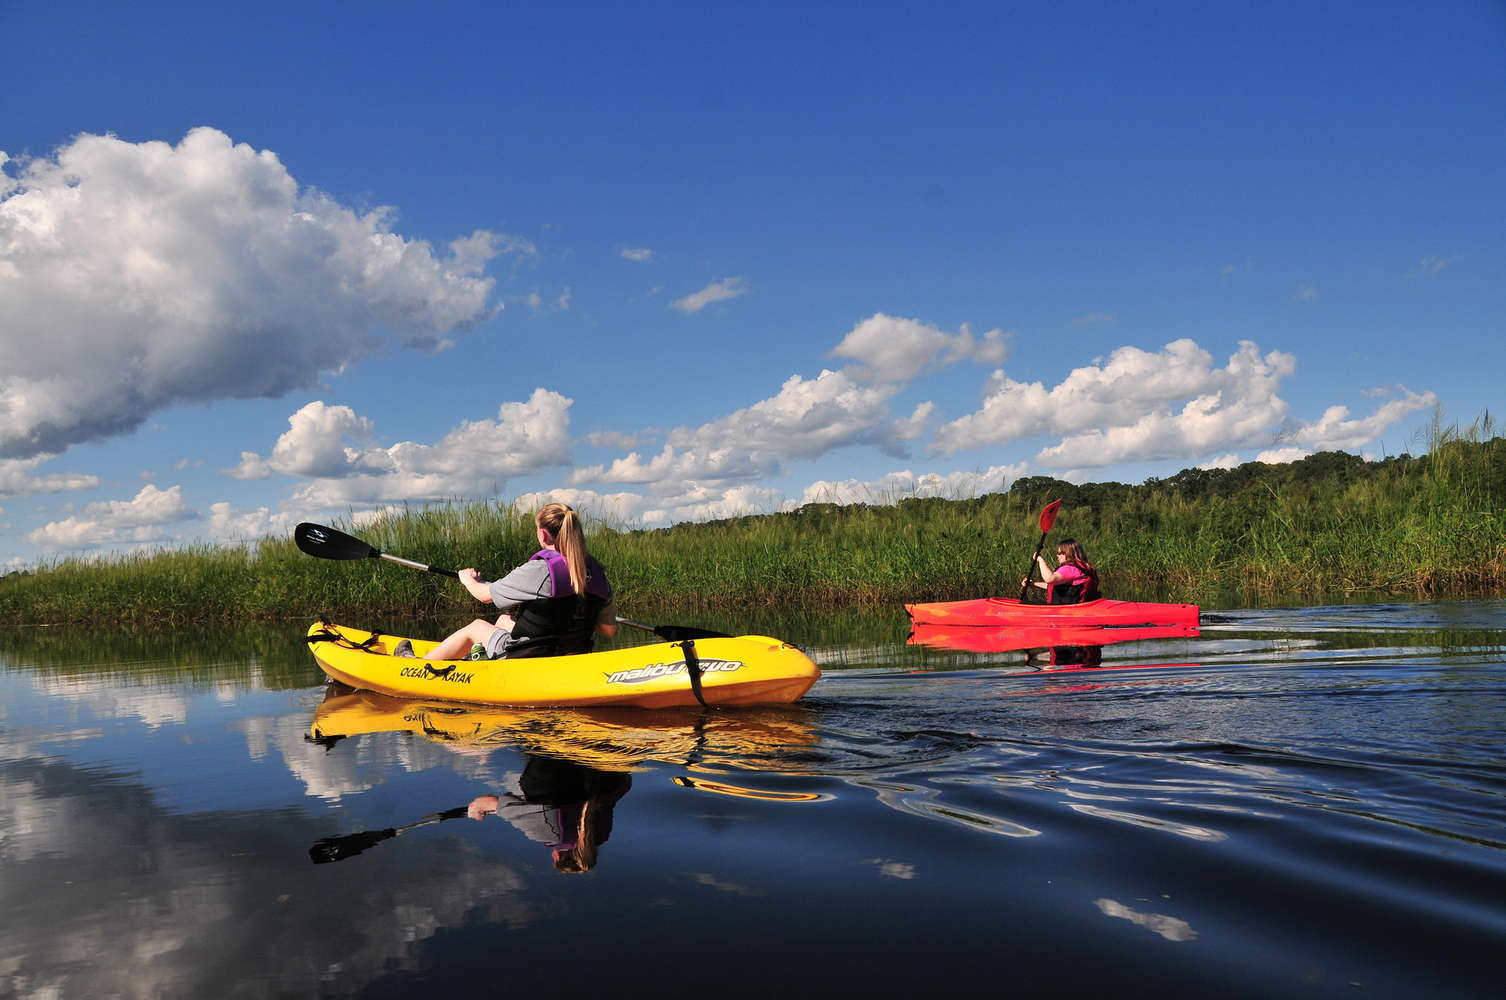 All Activities near New Jersey | Get Outside, New Jersey